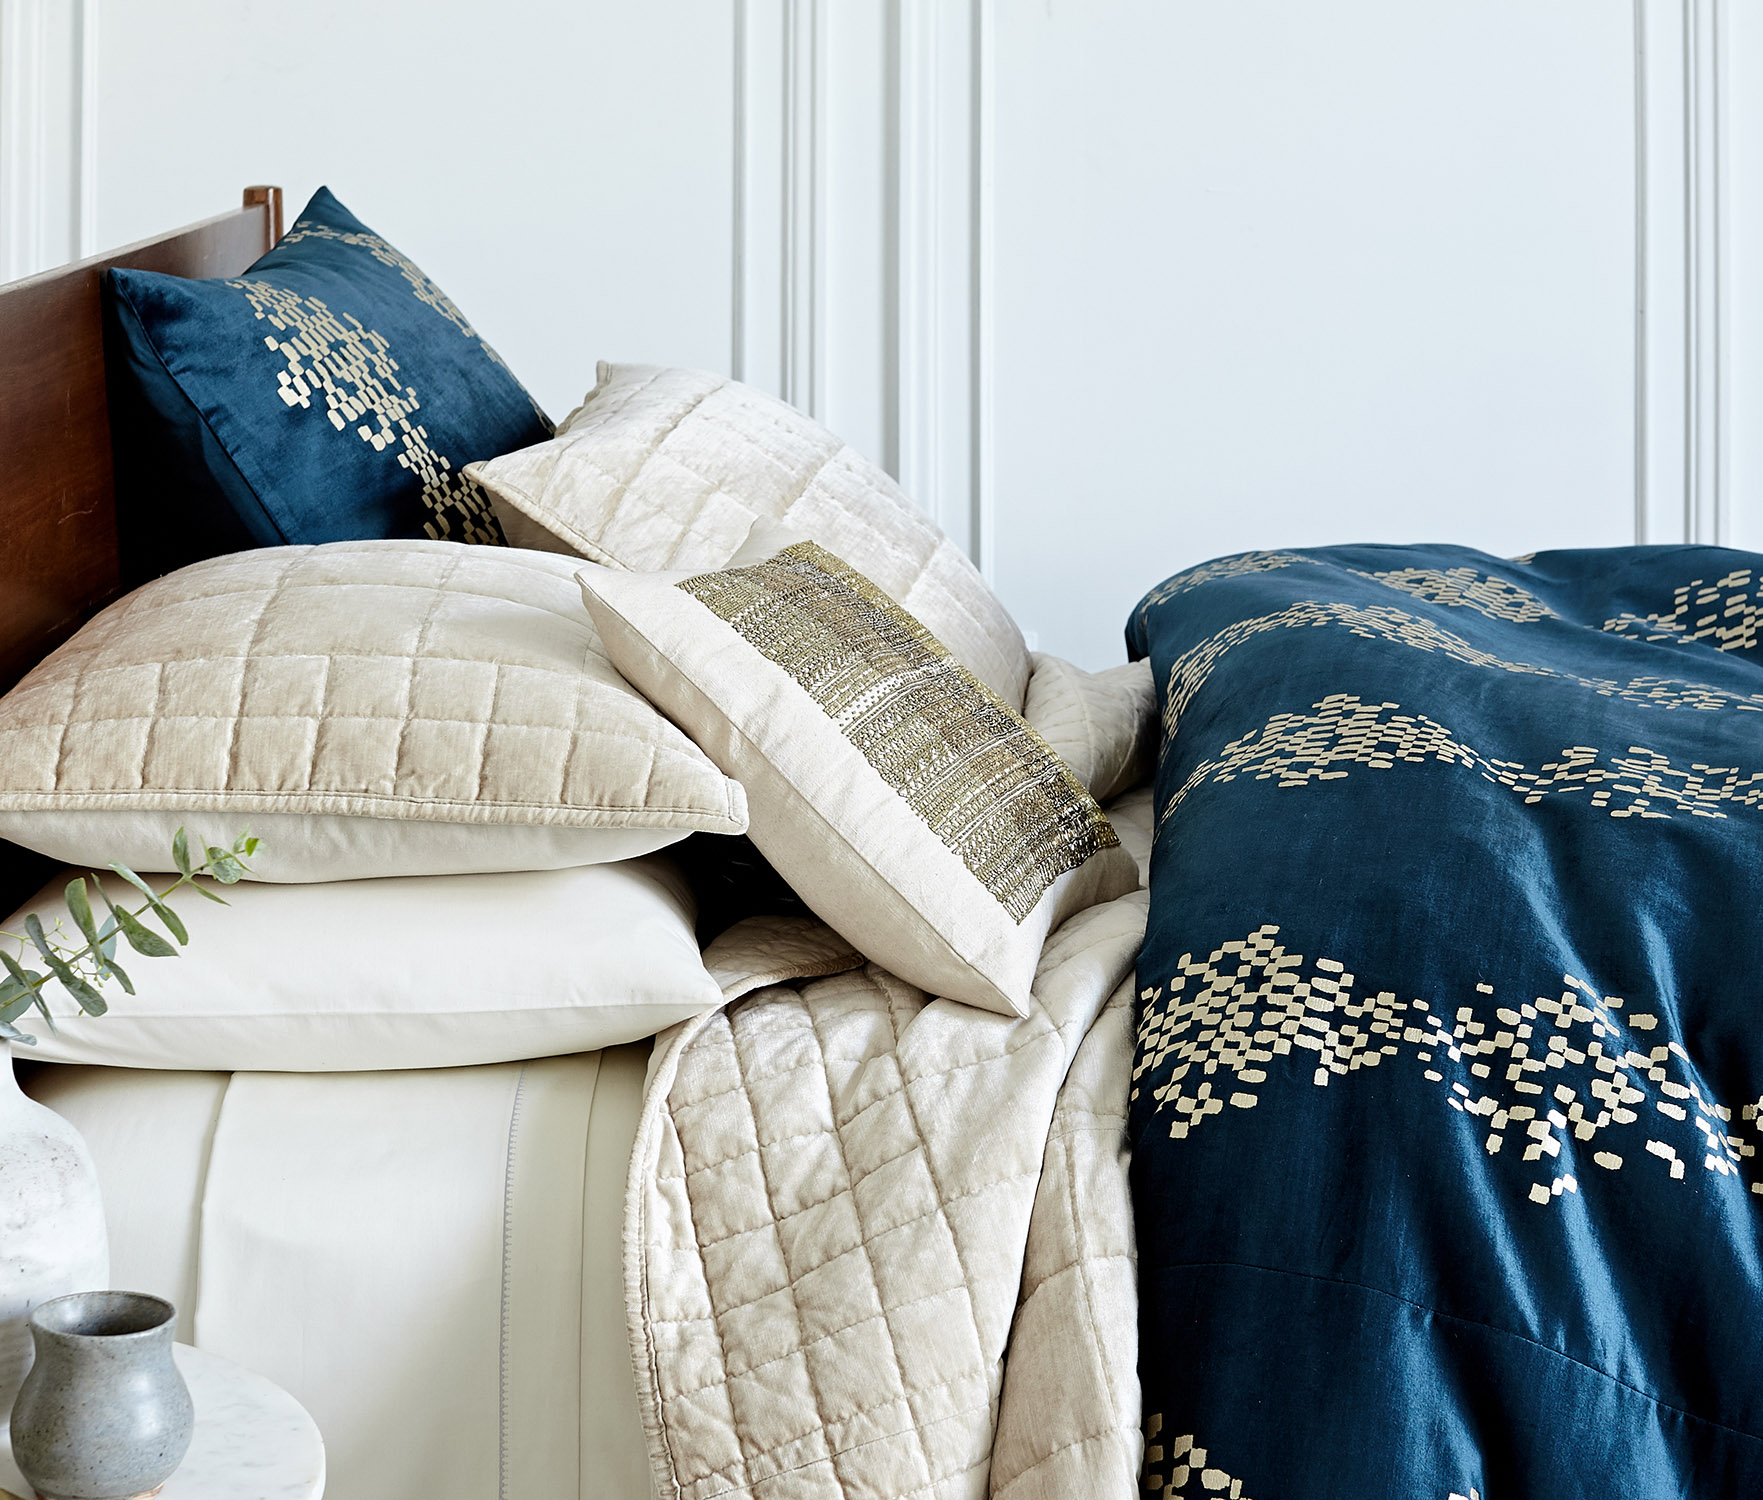 pip-bedding-collection-luster-velvet-fq-stone-trellis-regal-blue-duvet-v2-hl16-081_edited